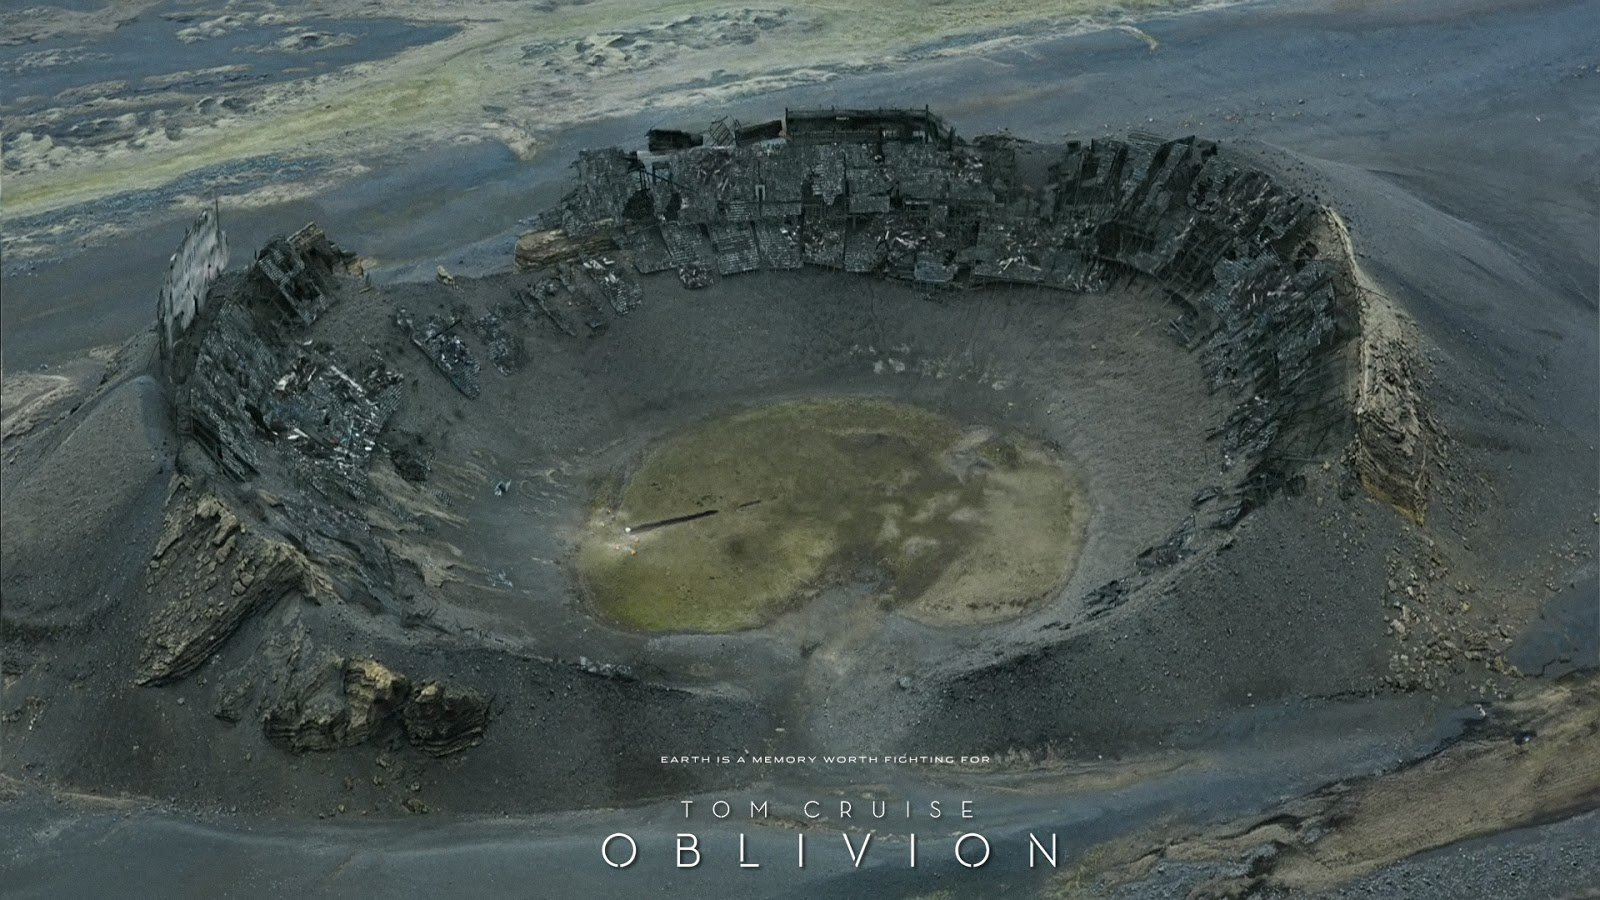 download hd 1600x900 oblivion movie computer wallpaper id:421291 for